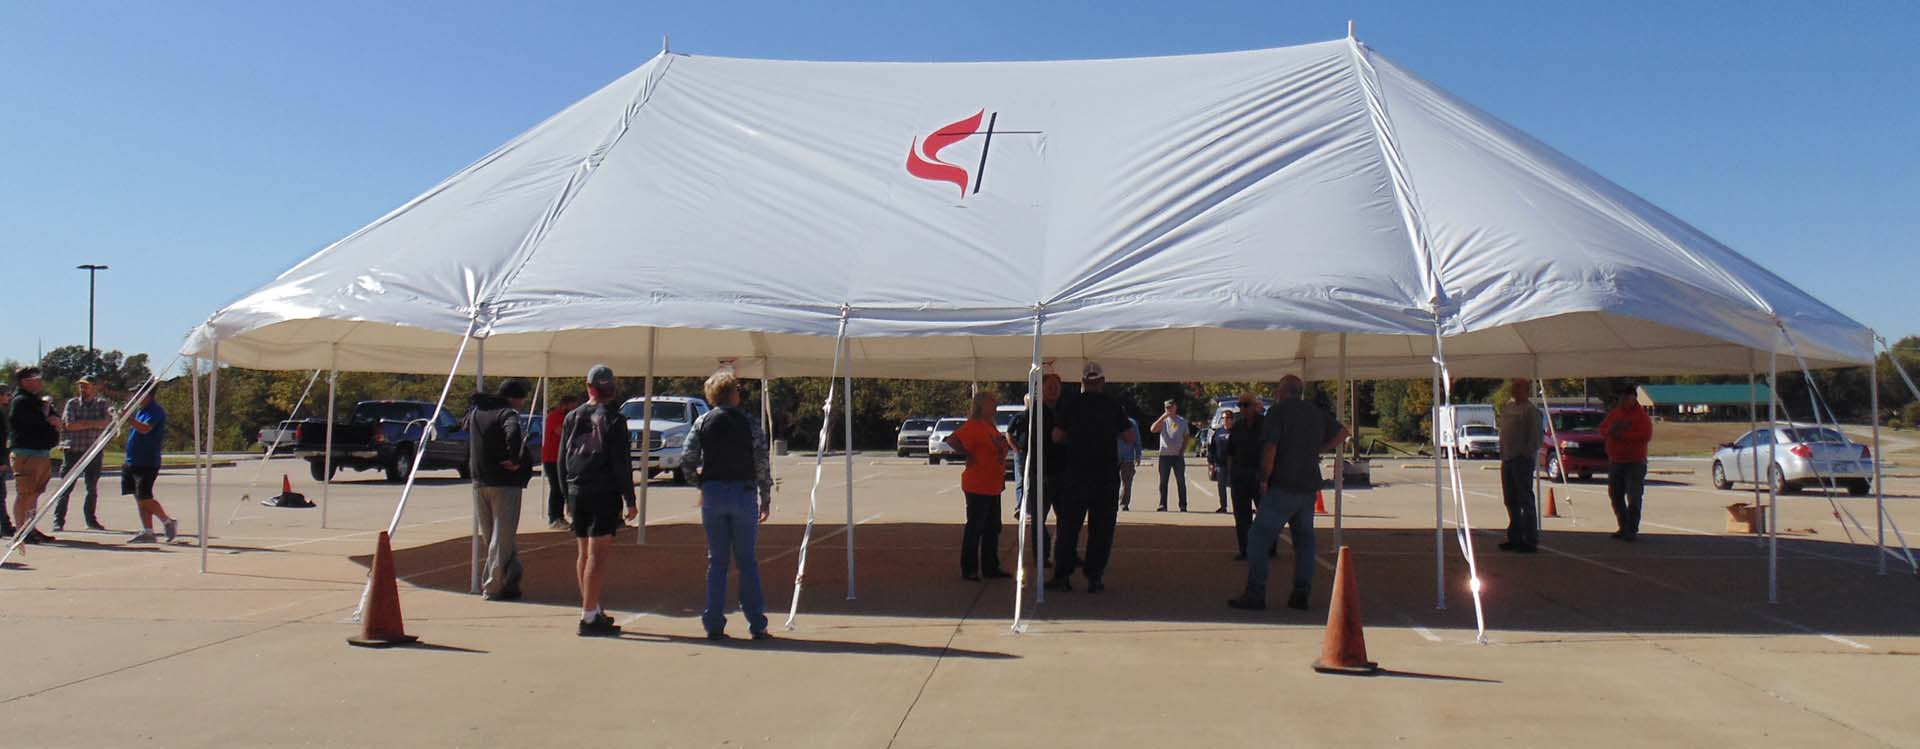 Custom TNT Tents for all Occasions   918.219.5572